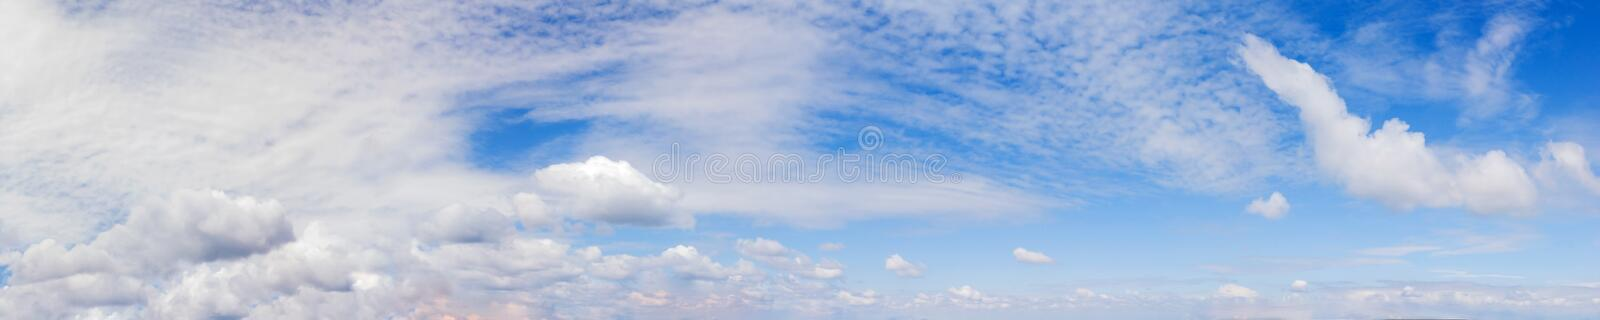 Vibrant color panoramic sky with cloud on a sunny day. Beautiful cirrus cloud. Panorama high resolution photograph stock images